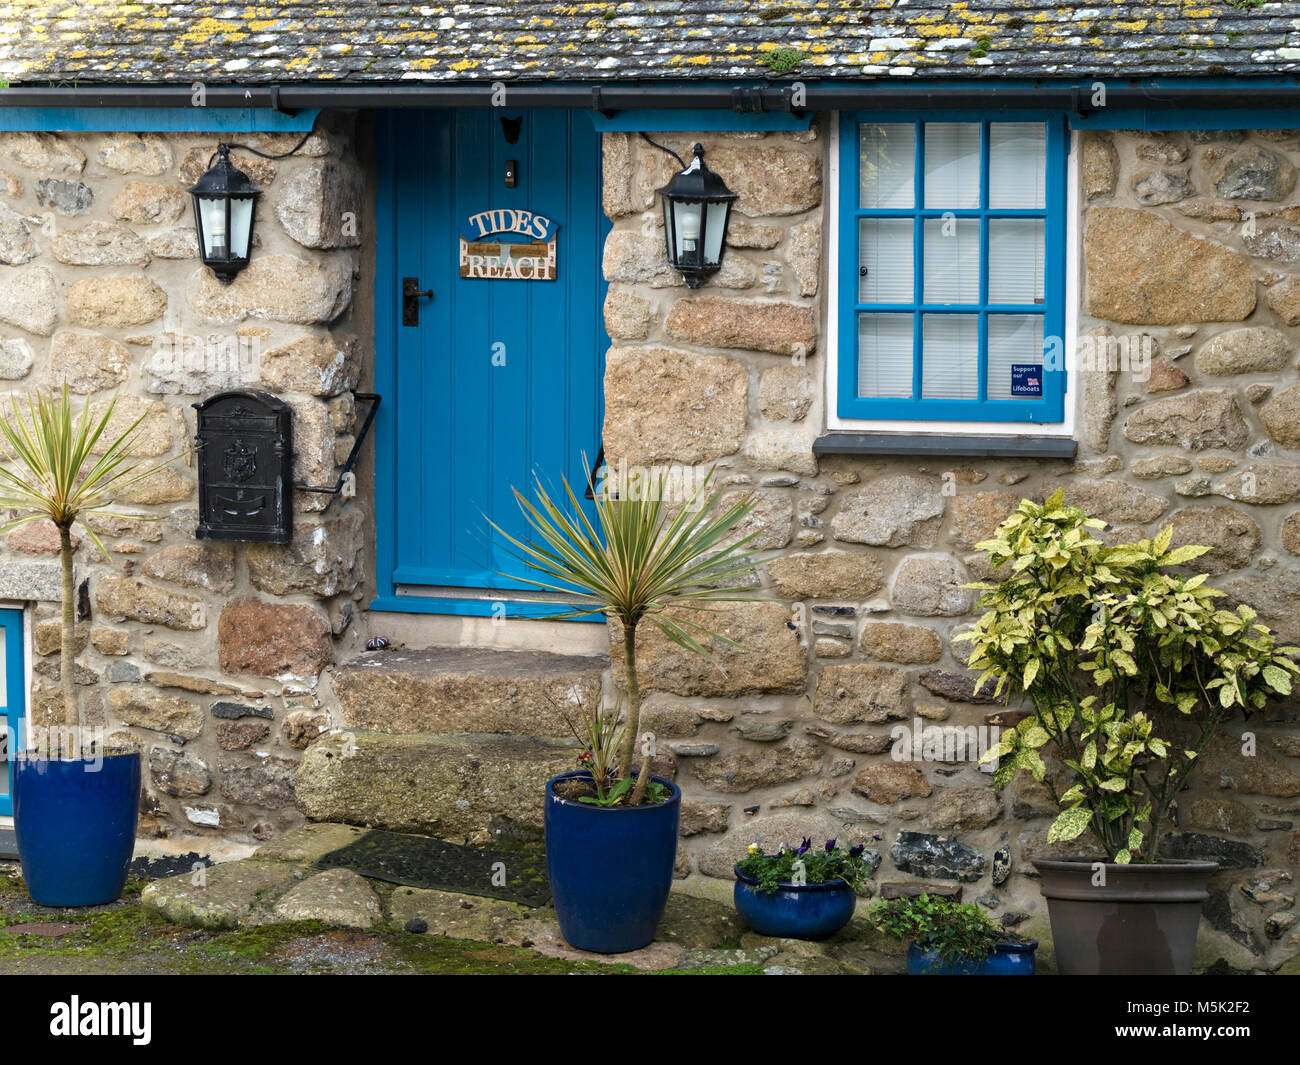 Old pretty granite stone Cornish fishermanu0027s cottage called  Tides Reach  with blue front door Mousehole Cornwall England UK & Old pretty granite stone Cornish fishermanu0027s cottage called